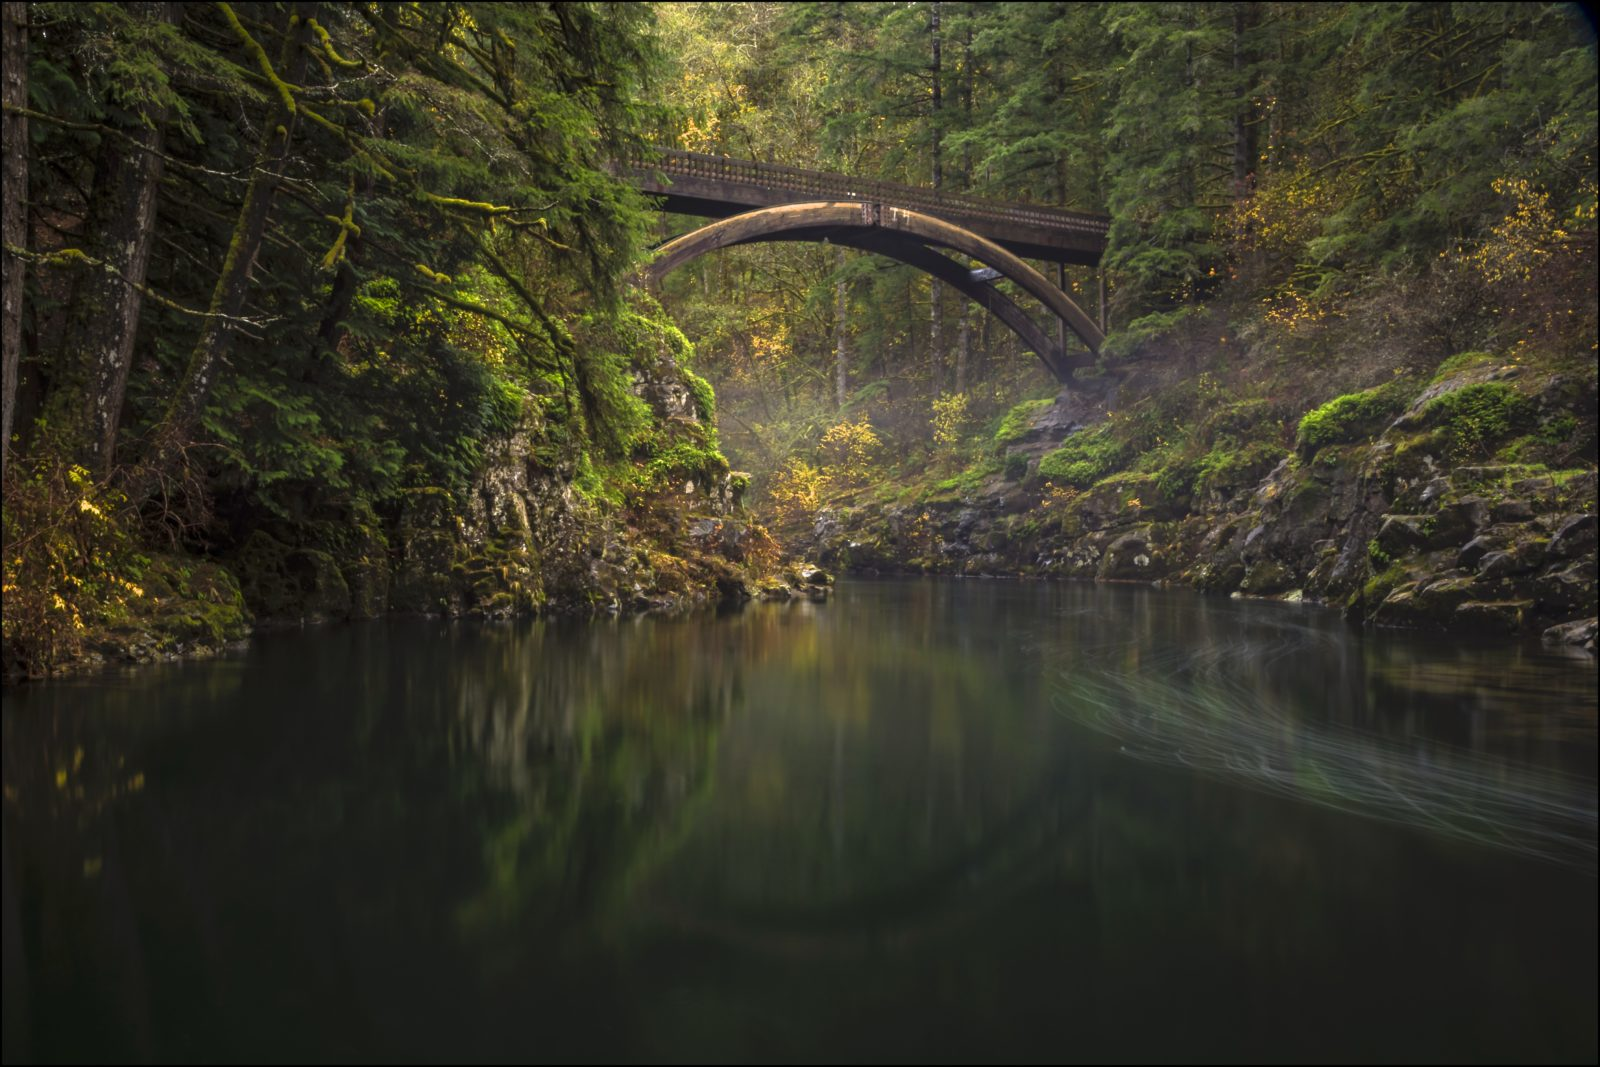 Bridging the Lewis River